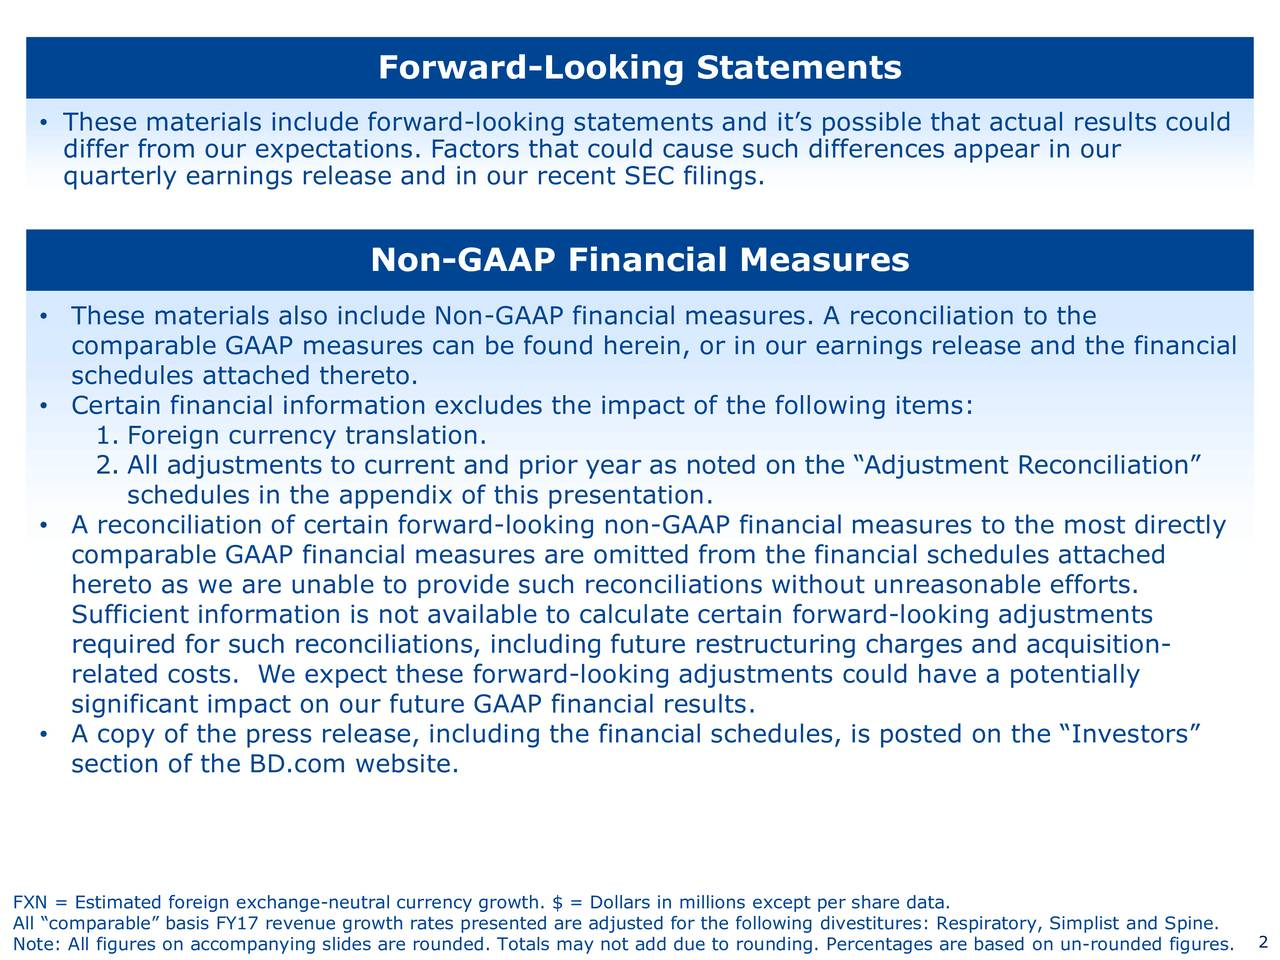 These materials include forward-looking statements and its possible that actual results could differ from our expectations. Factors that could cause such differences appear in our quarterly earnings release and in our recent SEC filings. Non-GAAP Financial Measures These materials also include Non-GAAP financial measures. A reconciliation to the comparable GAAP measures can be found herein, or in our earnings release and the financial schedules attached thereto. Certain financial information excludes the impact of the following items: 1. Foreign currency translation. 2. All adjustments to current and prior year as noted on the Adjustment Reconciliation schedules in the appendix of this presentation. A reconciliation of certain forward-looking non-GAAP financial measures to the most directly comparable GAAP financial measures are omitted from the financial schedules attached hereto as we are unable to provide such reconciliations without unreasonable efforts. Sufficient information is not available to calculate certain forward-looking adjustments required for such reconciliations, including future restructuring charges and acquisition- related costs. We expect these forward-looking adjustments could have a potentially significant impact on our future GAAP financial results. A copy of the press release, including the financial schedules, is posted on the Investors section of the BD.com website. FXN = Estimated foreign exchange-neutral currency growth. $ = Dollars in millions except per share data. All comparable basis FY17 revenue growth rates presented are adjusted for the following divestitures:2Respiratory, Simplist and Spine.